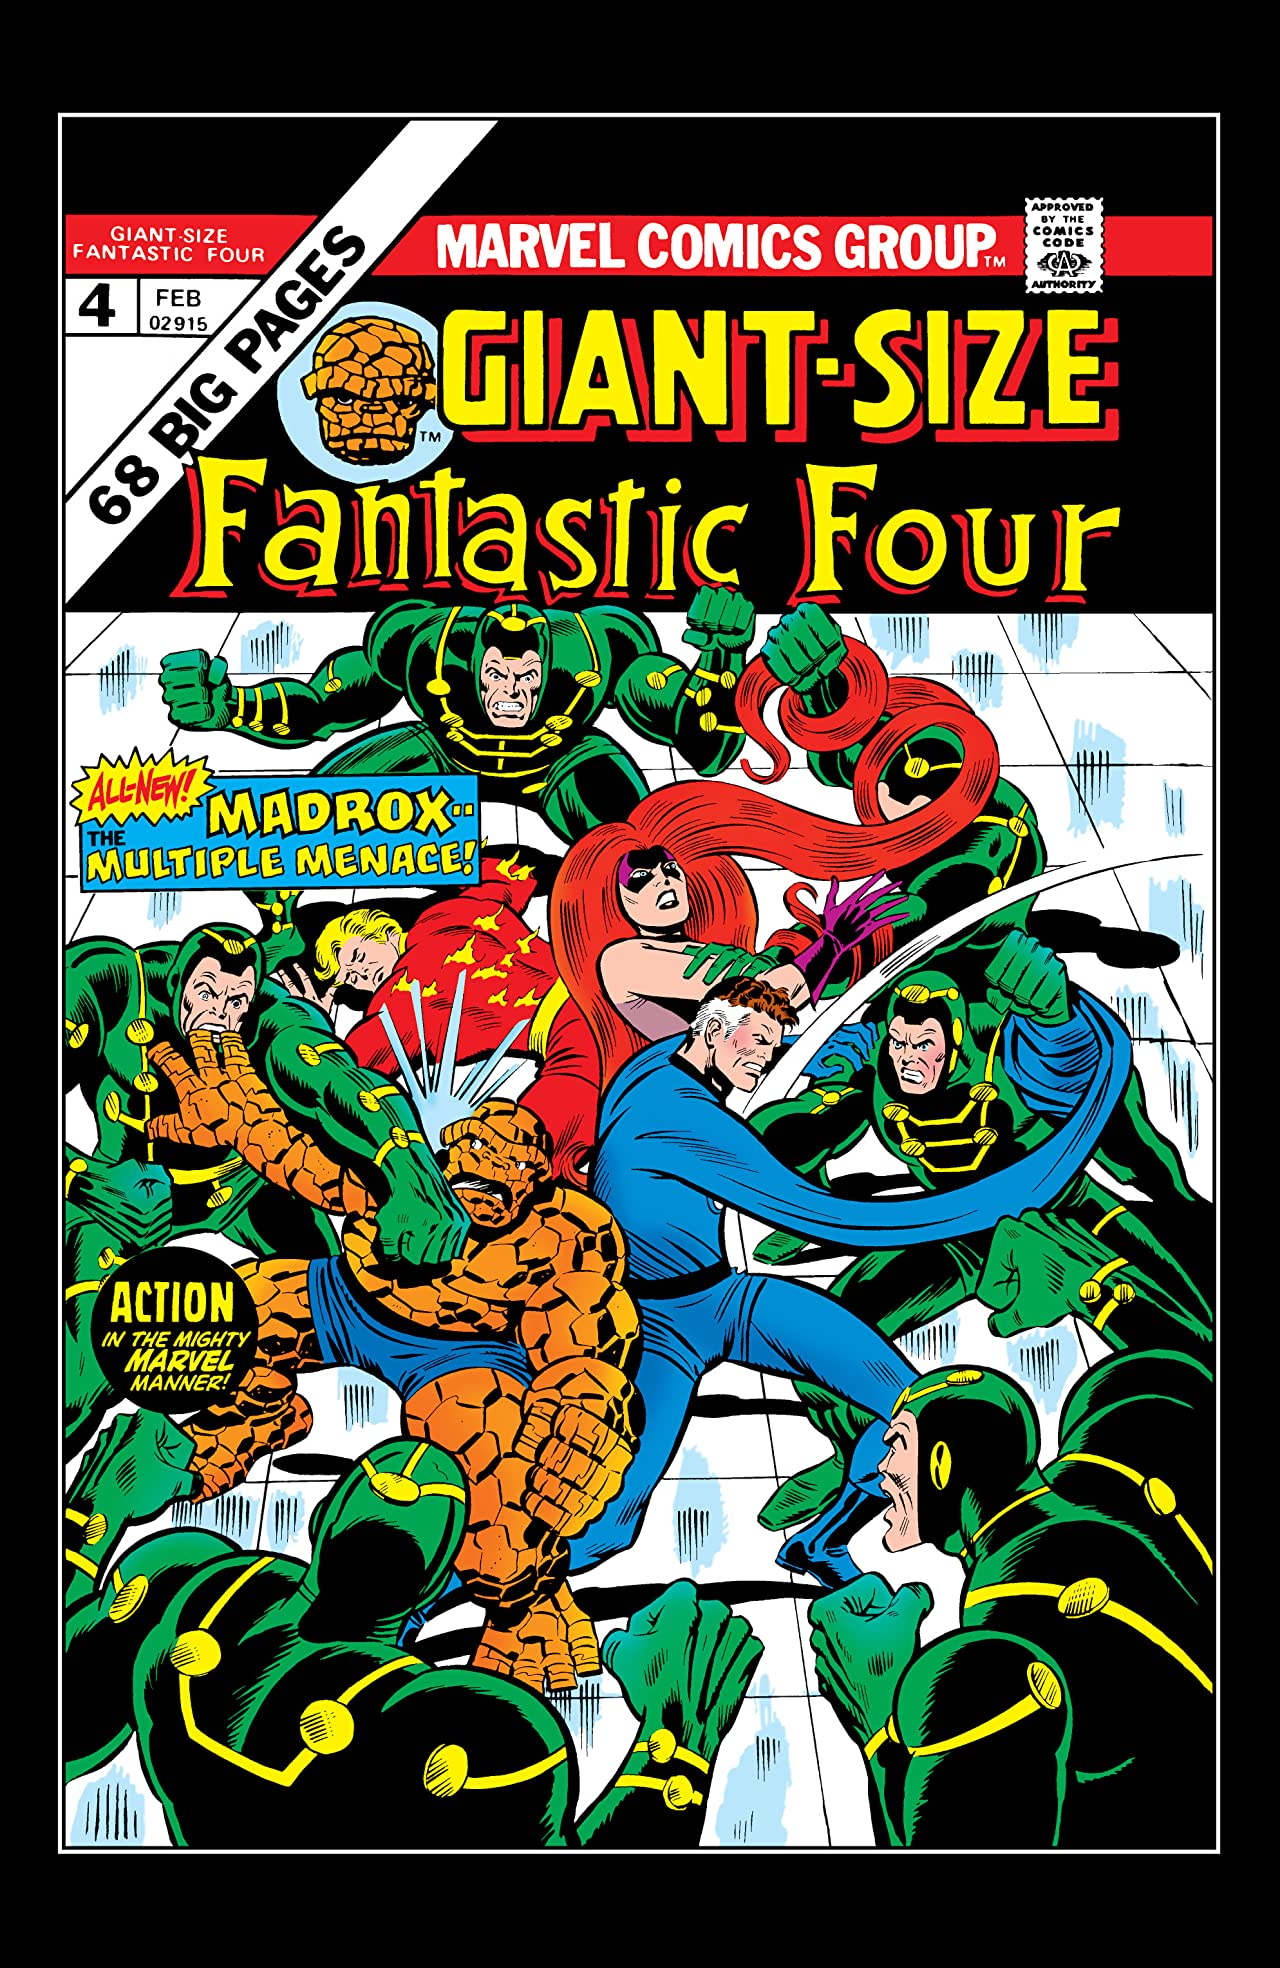 Giant-Size Fantastic Four (1975) #4